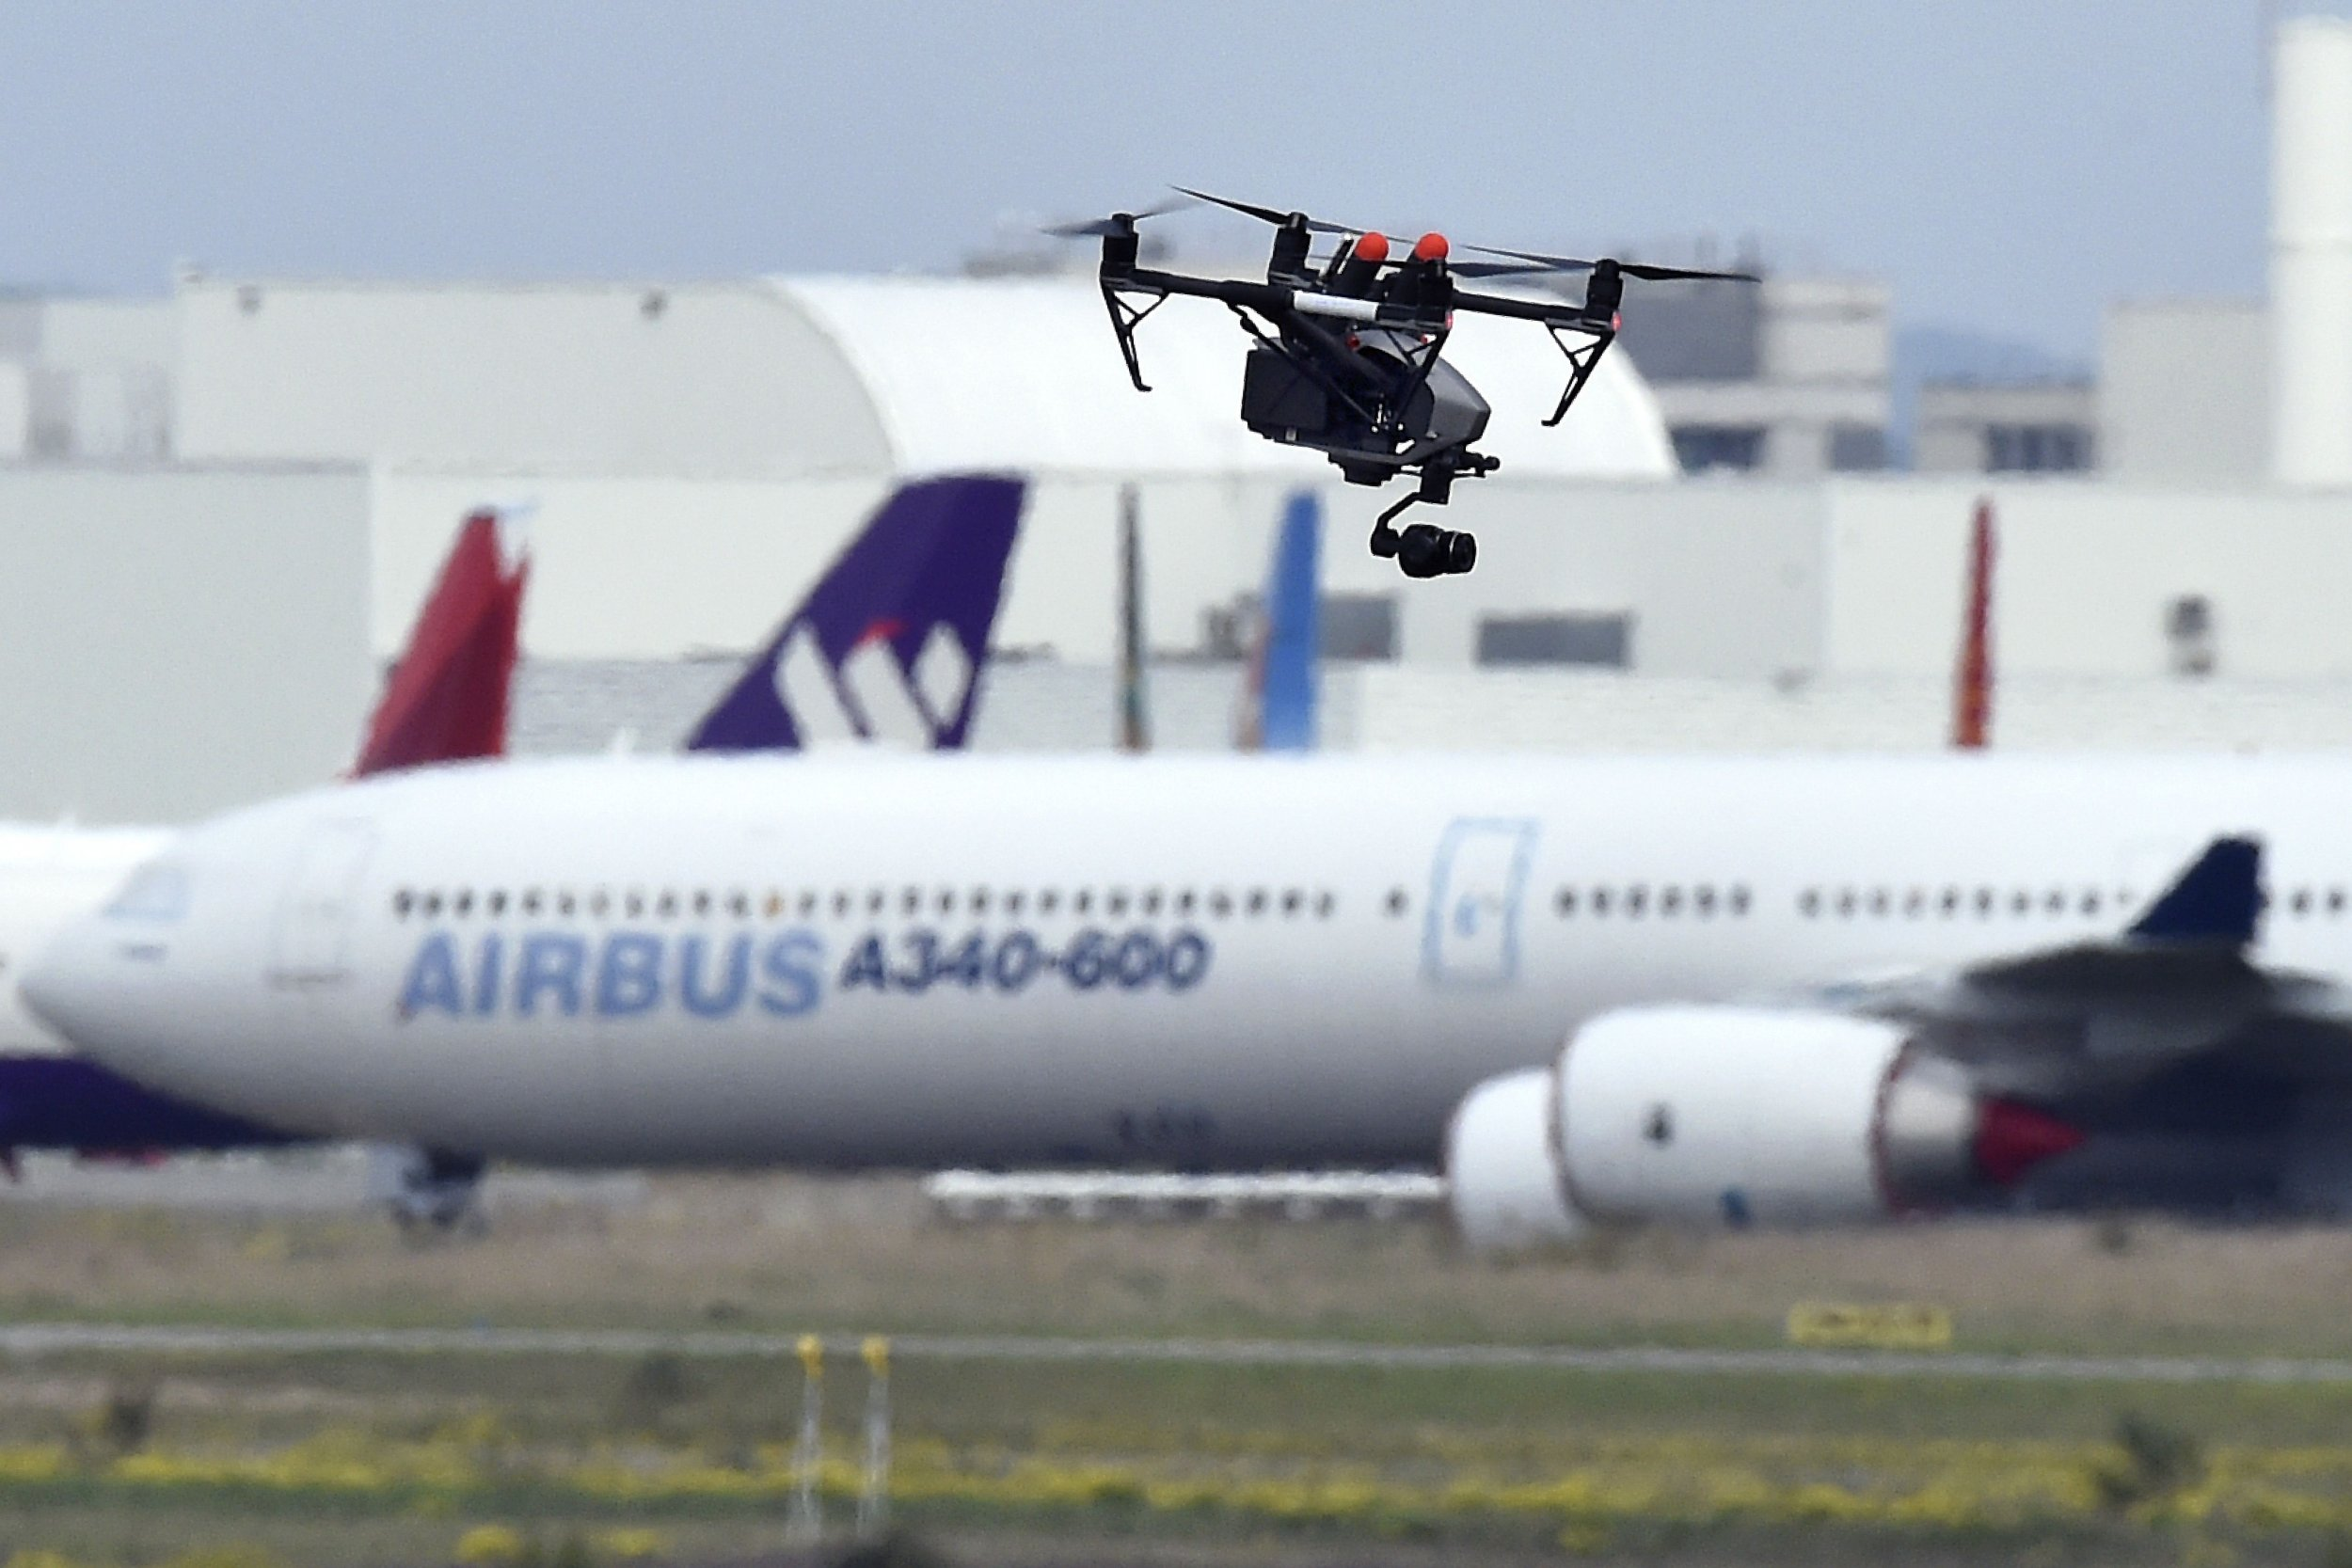 Drone at Toulouse airport